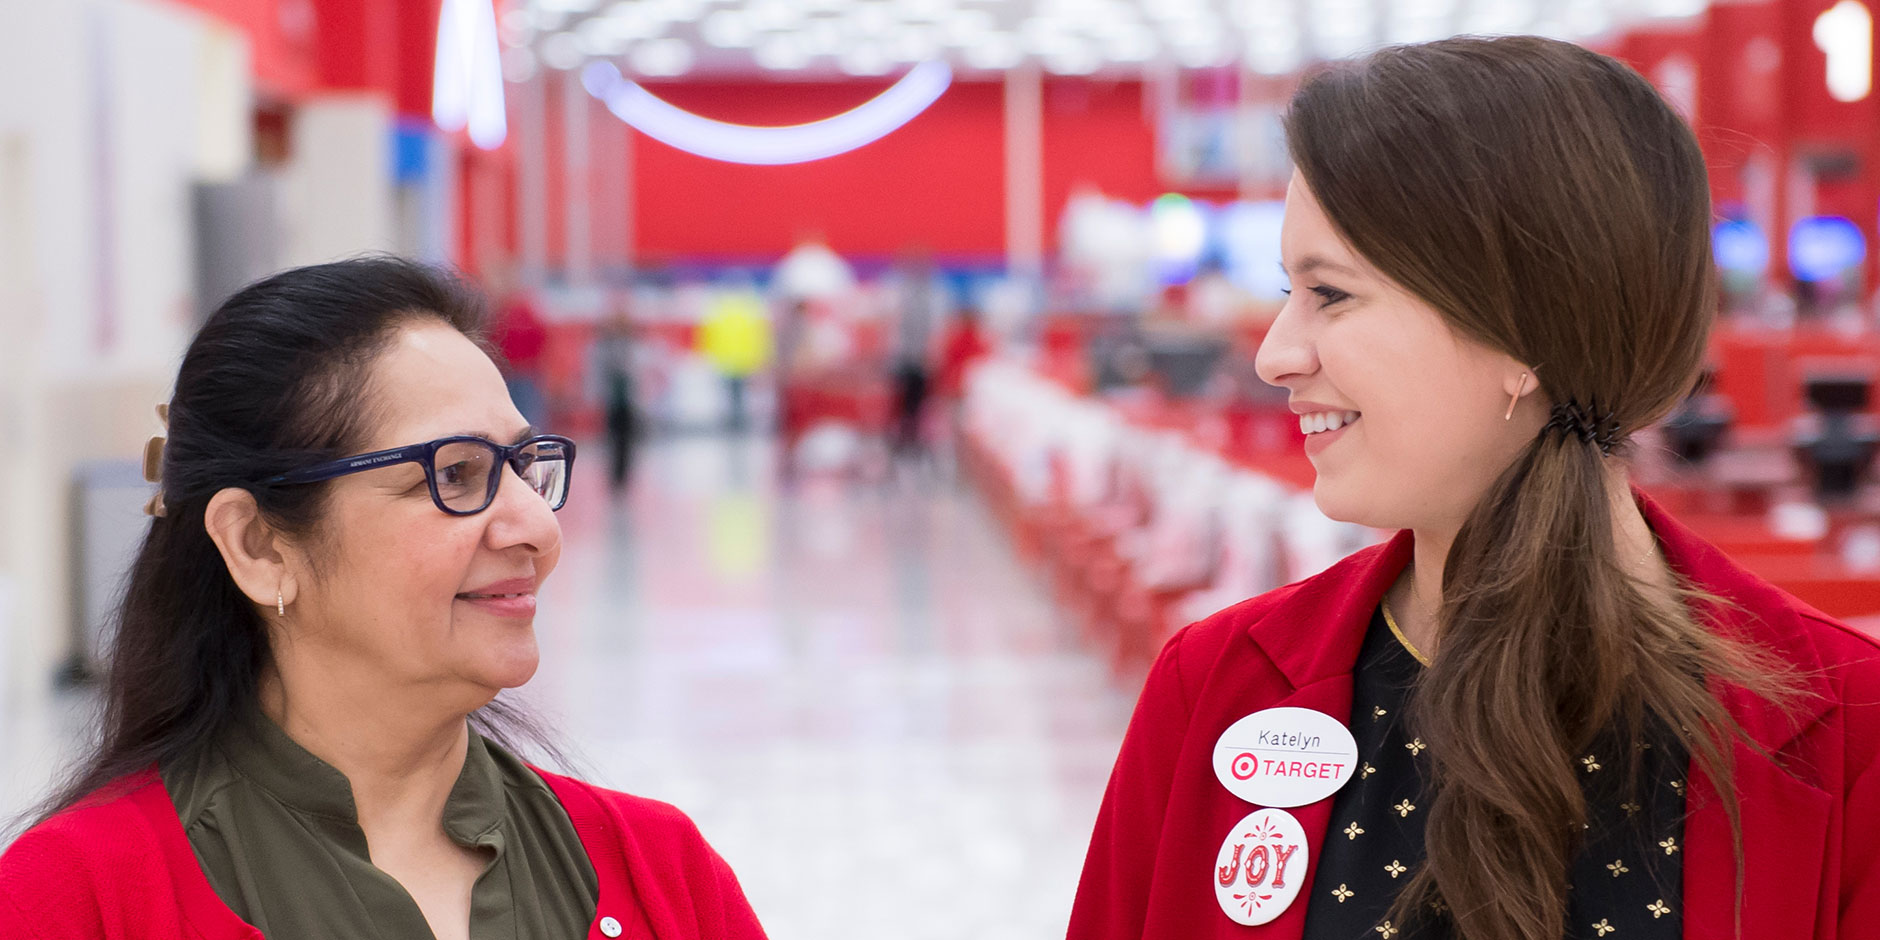 A close-up of two team members smiling at each other and standing in a Target aisle